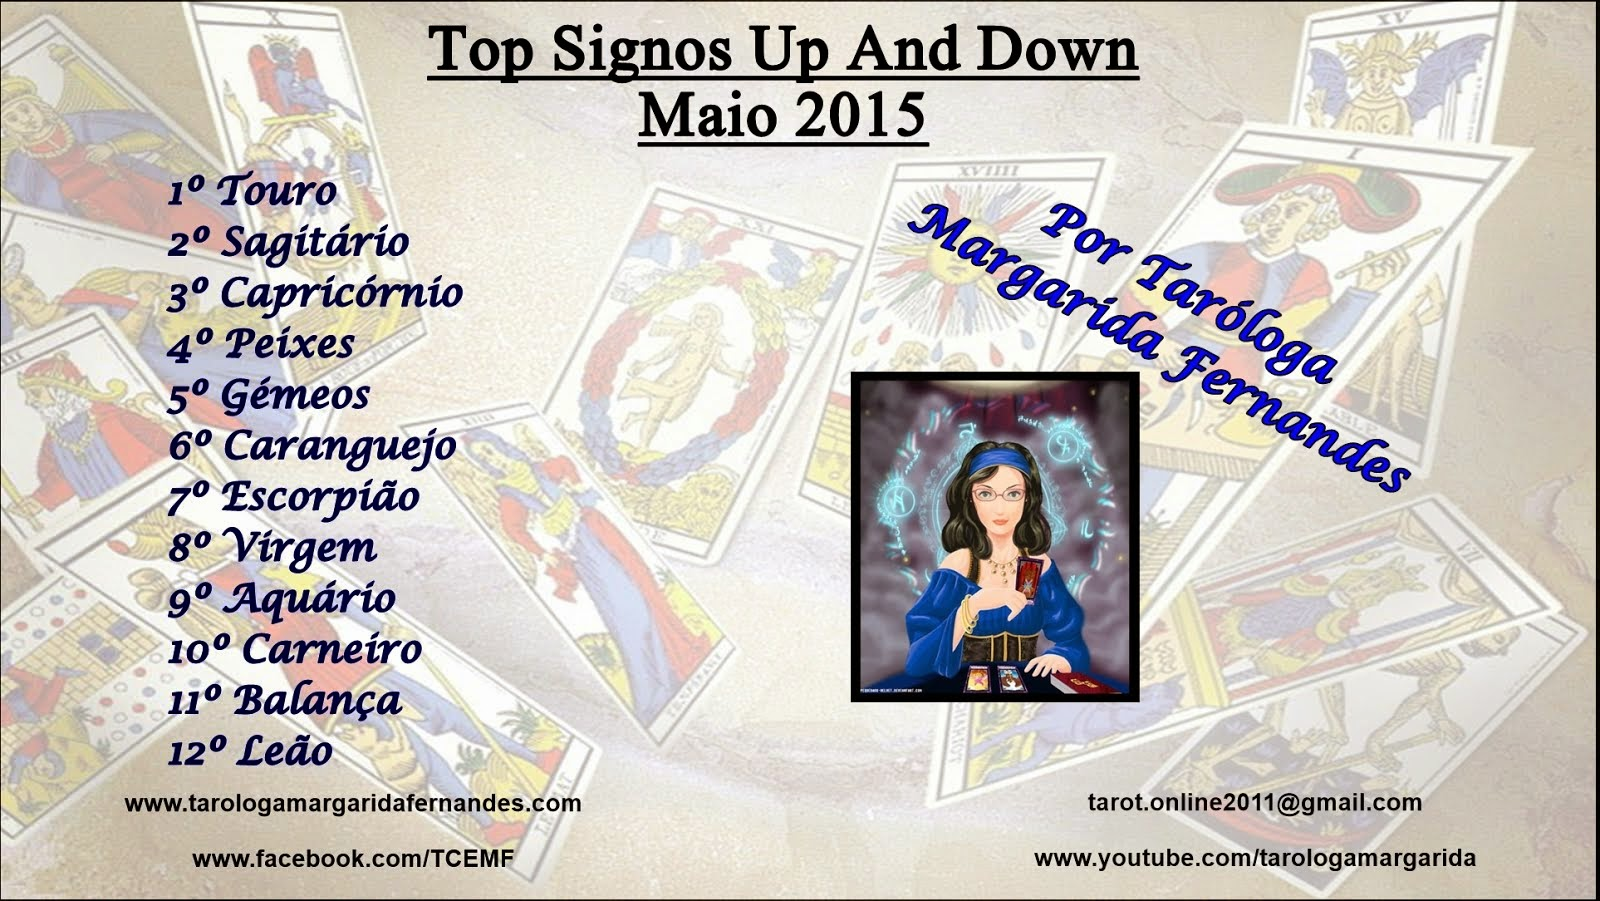 Top Signos Up And Down - Maio de 2015